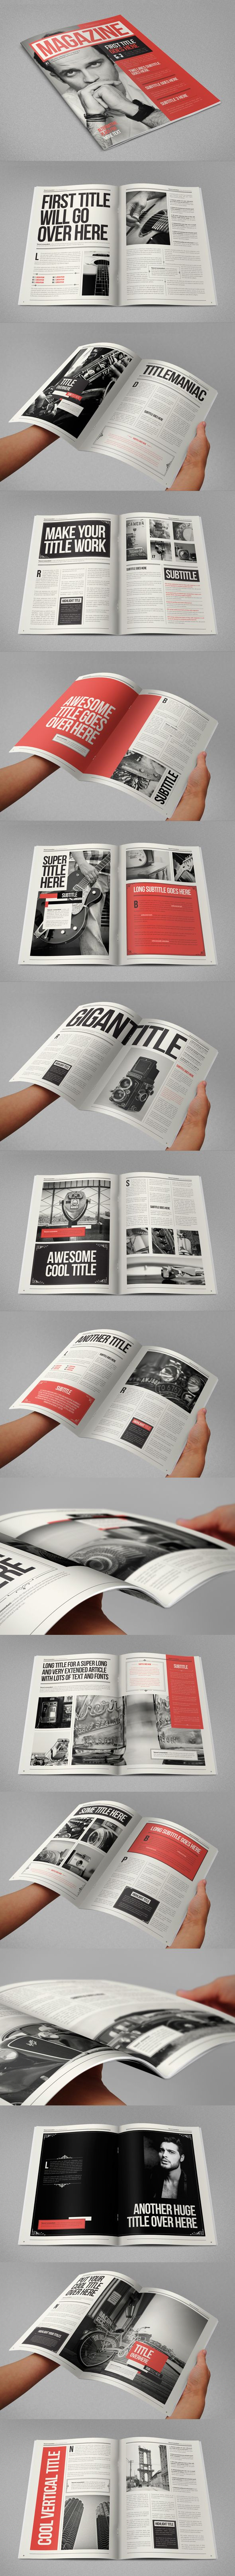 Retro Vintage Magazine on Editorial Design Served